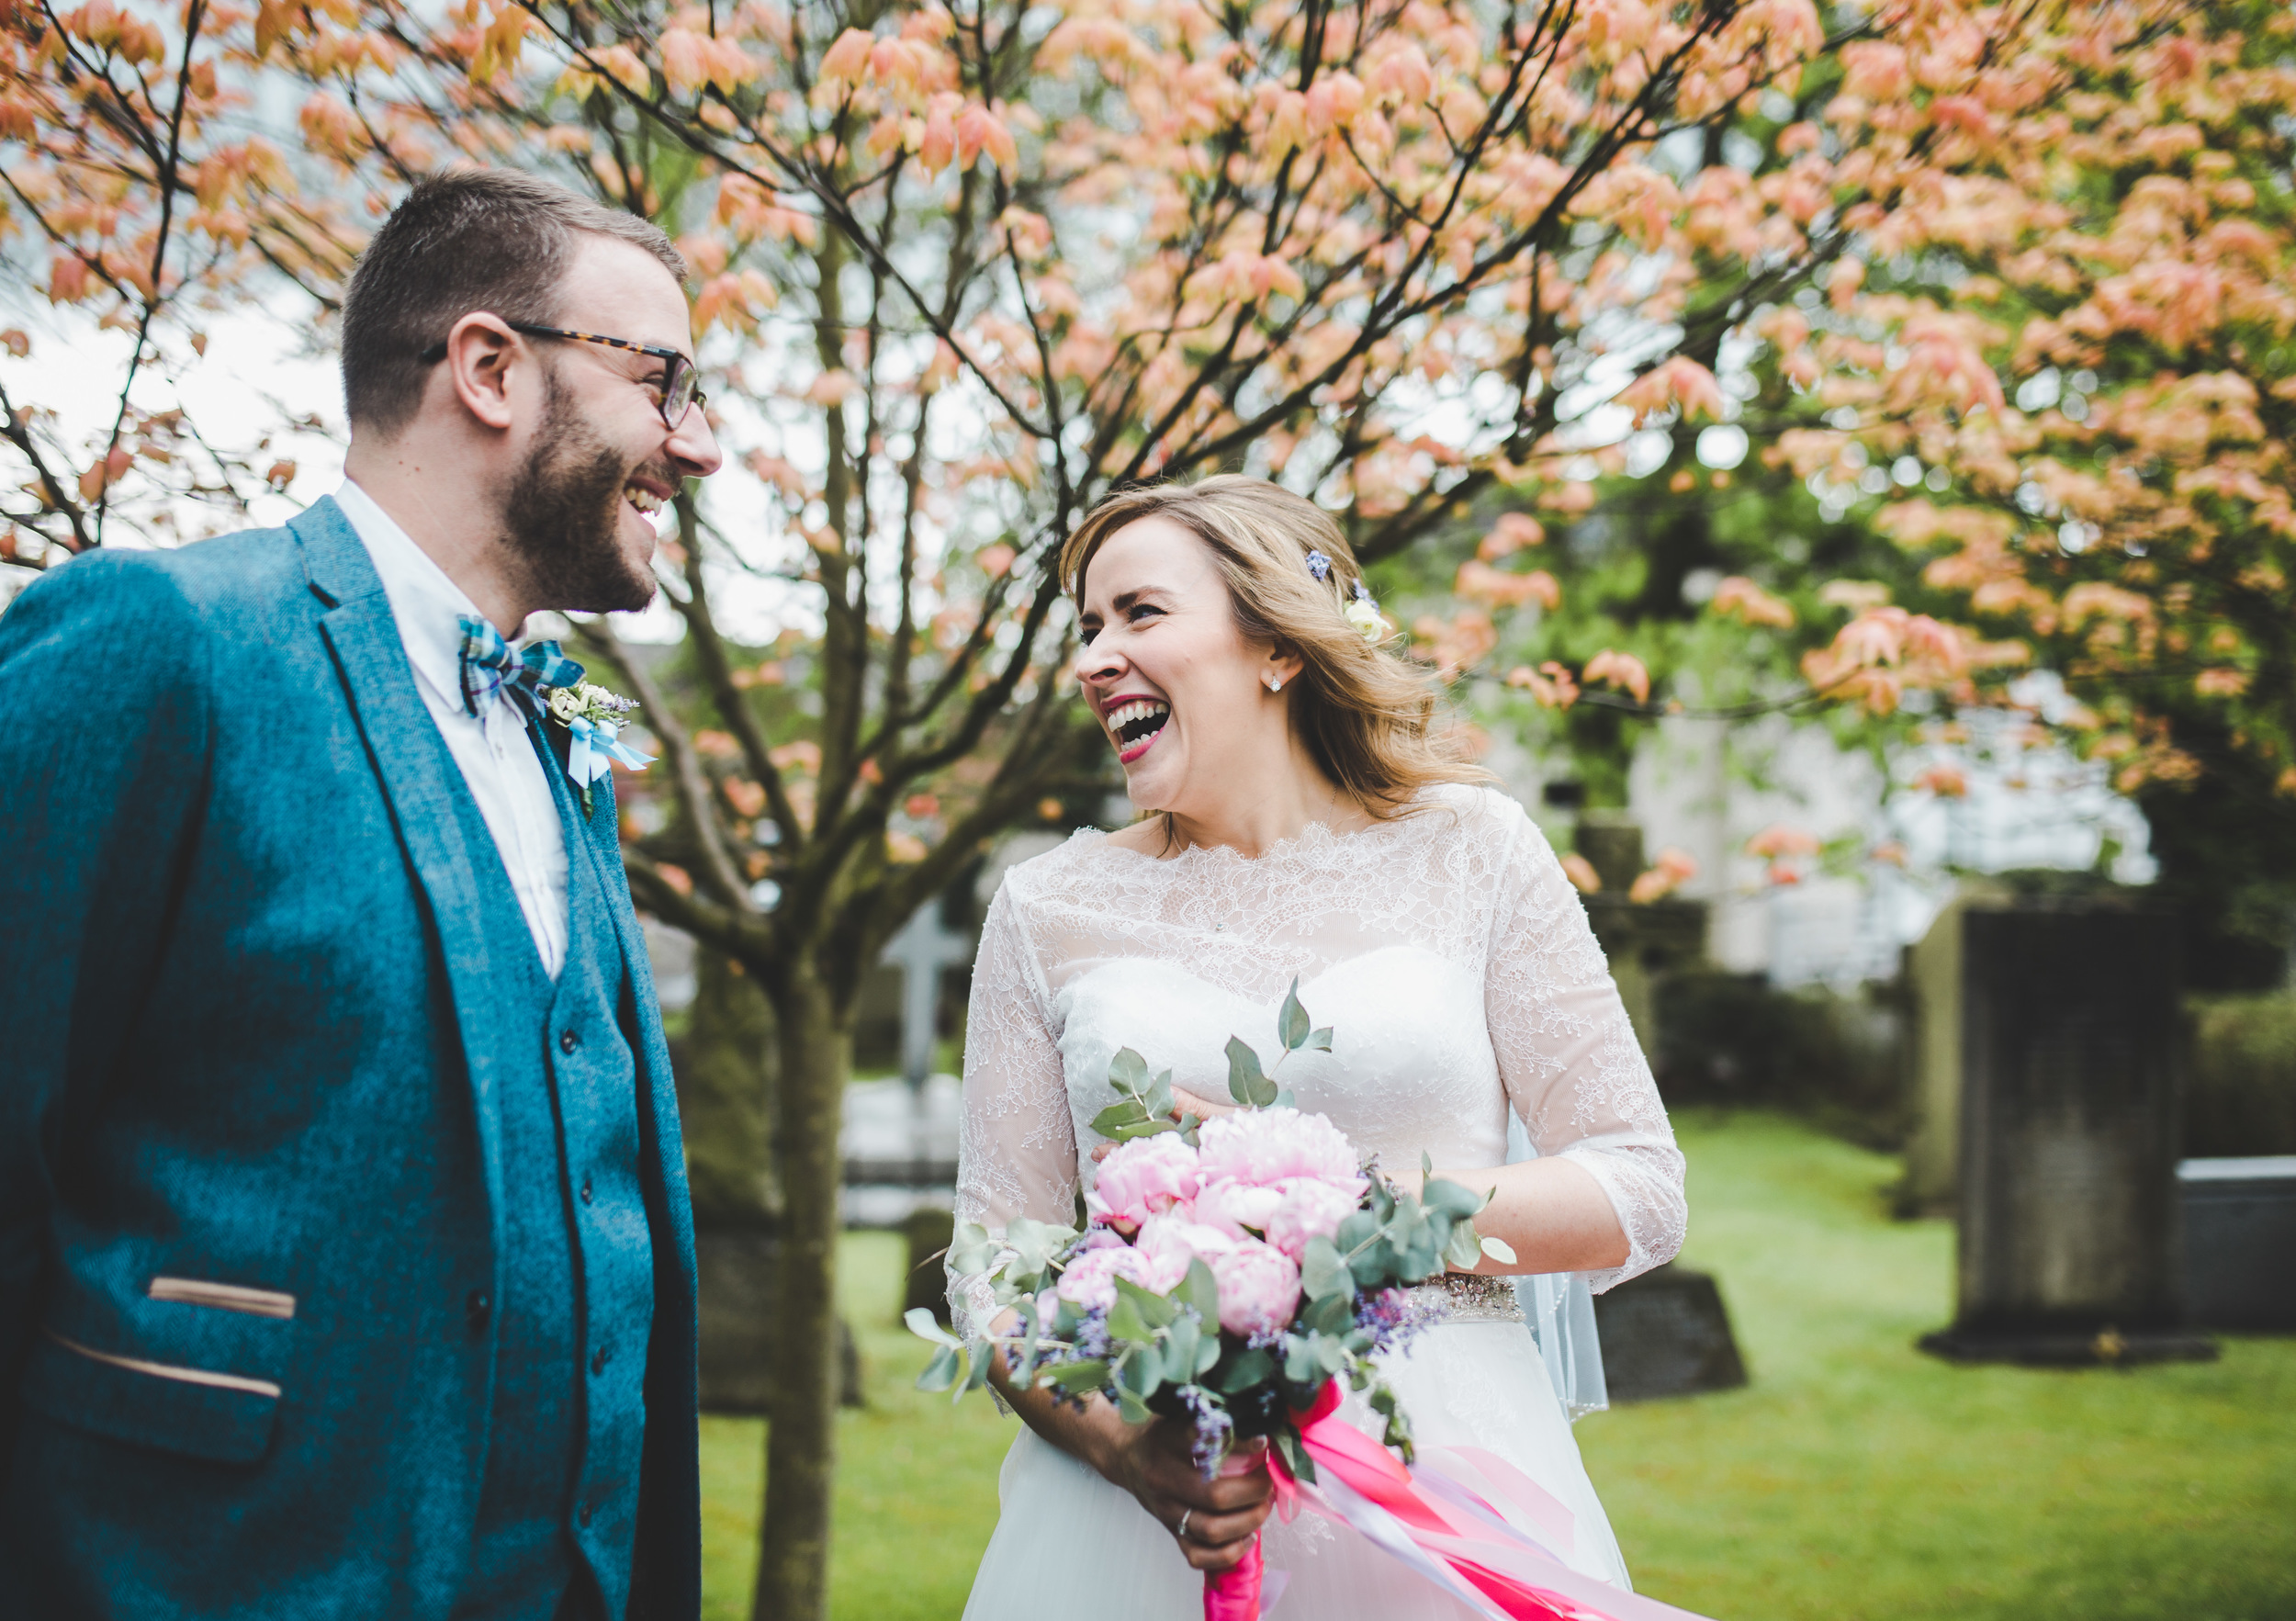 documentary wedding photography - bride and groom laugh outside church